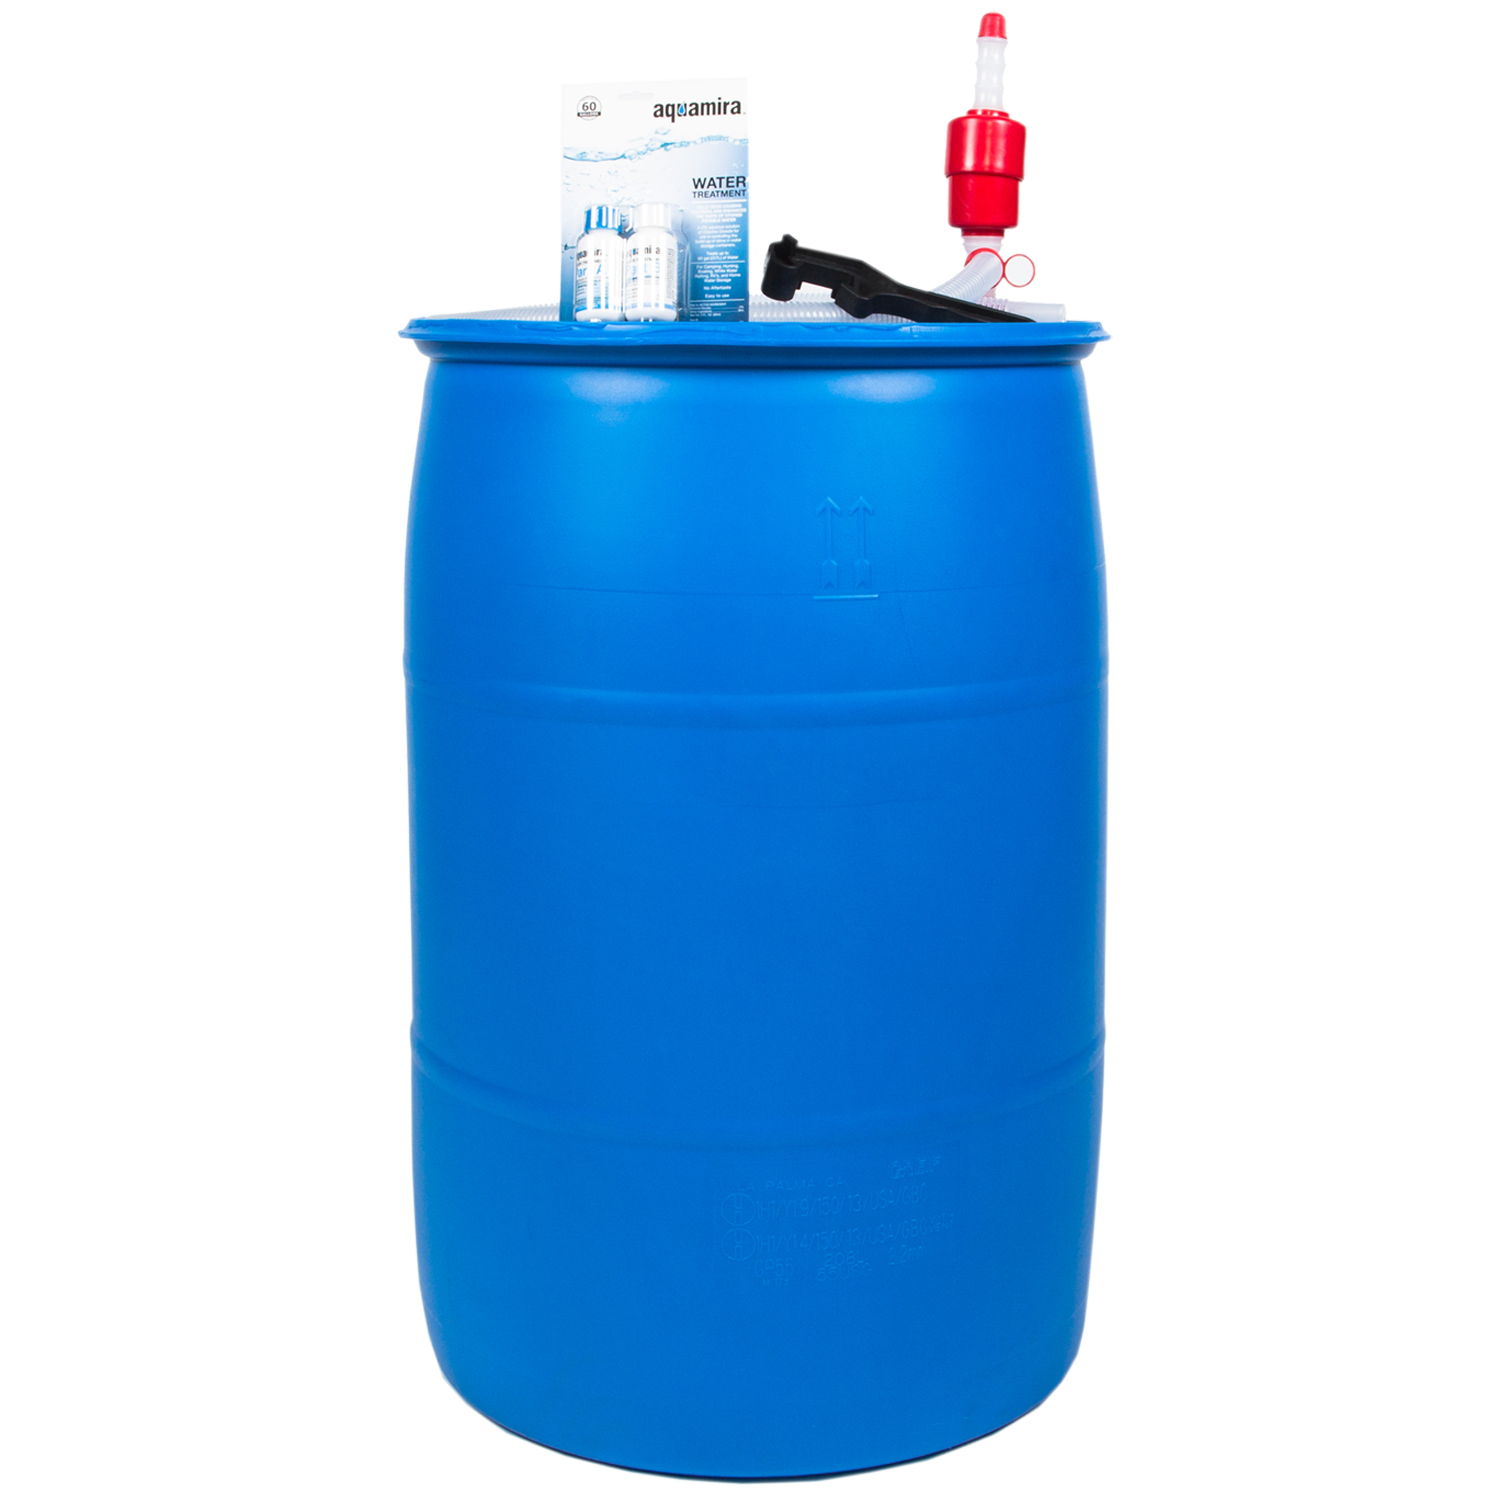 Augason Farms 55-Gallon Water Filtration and Storage Kit